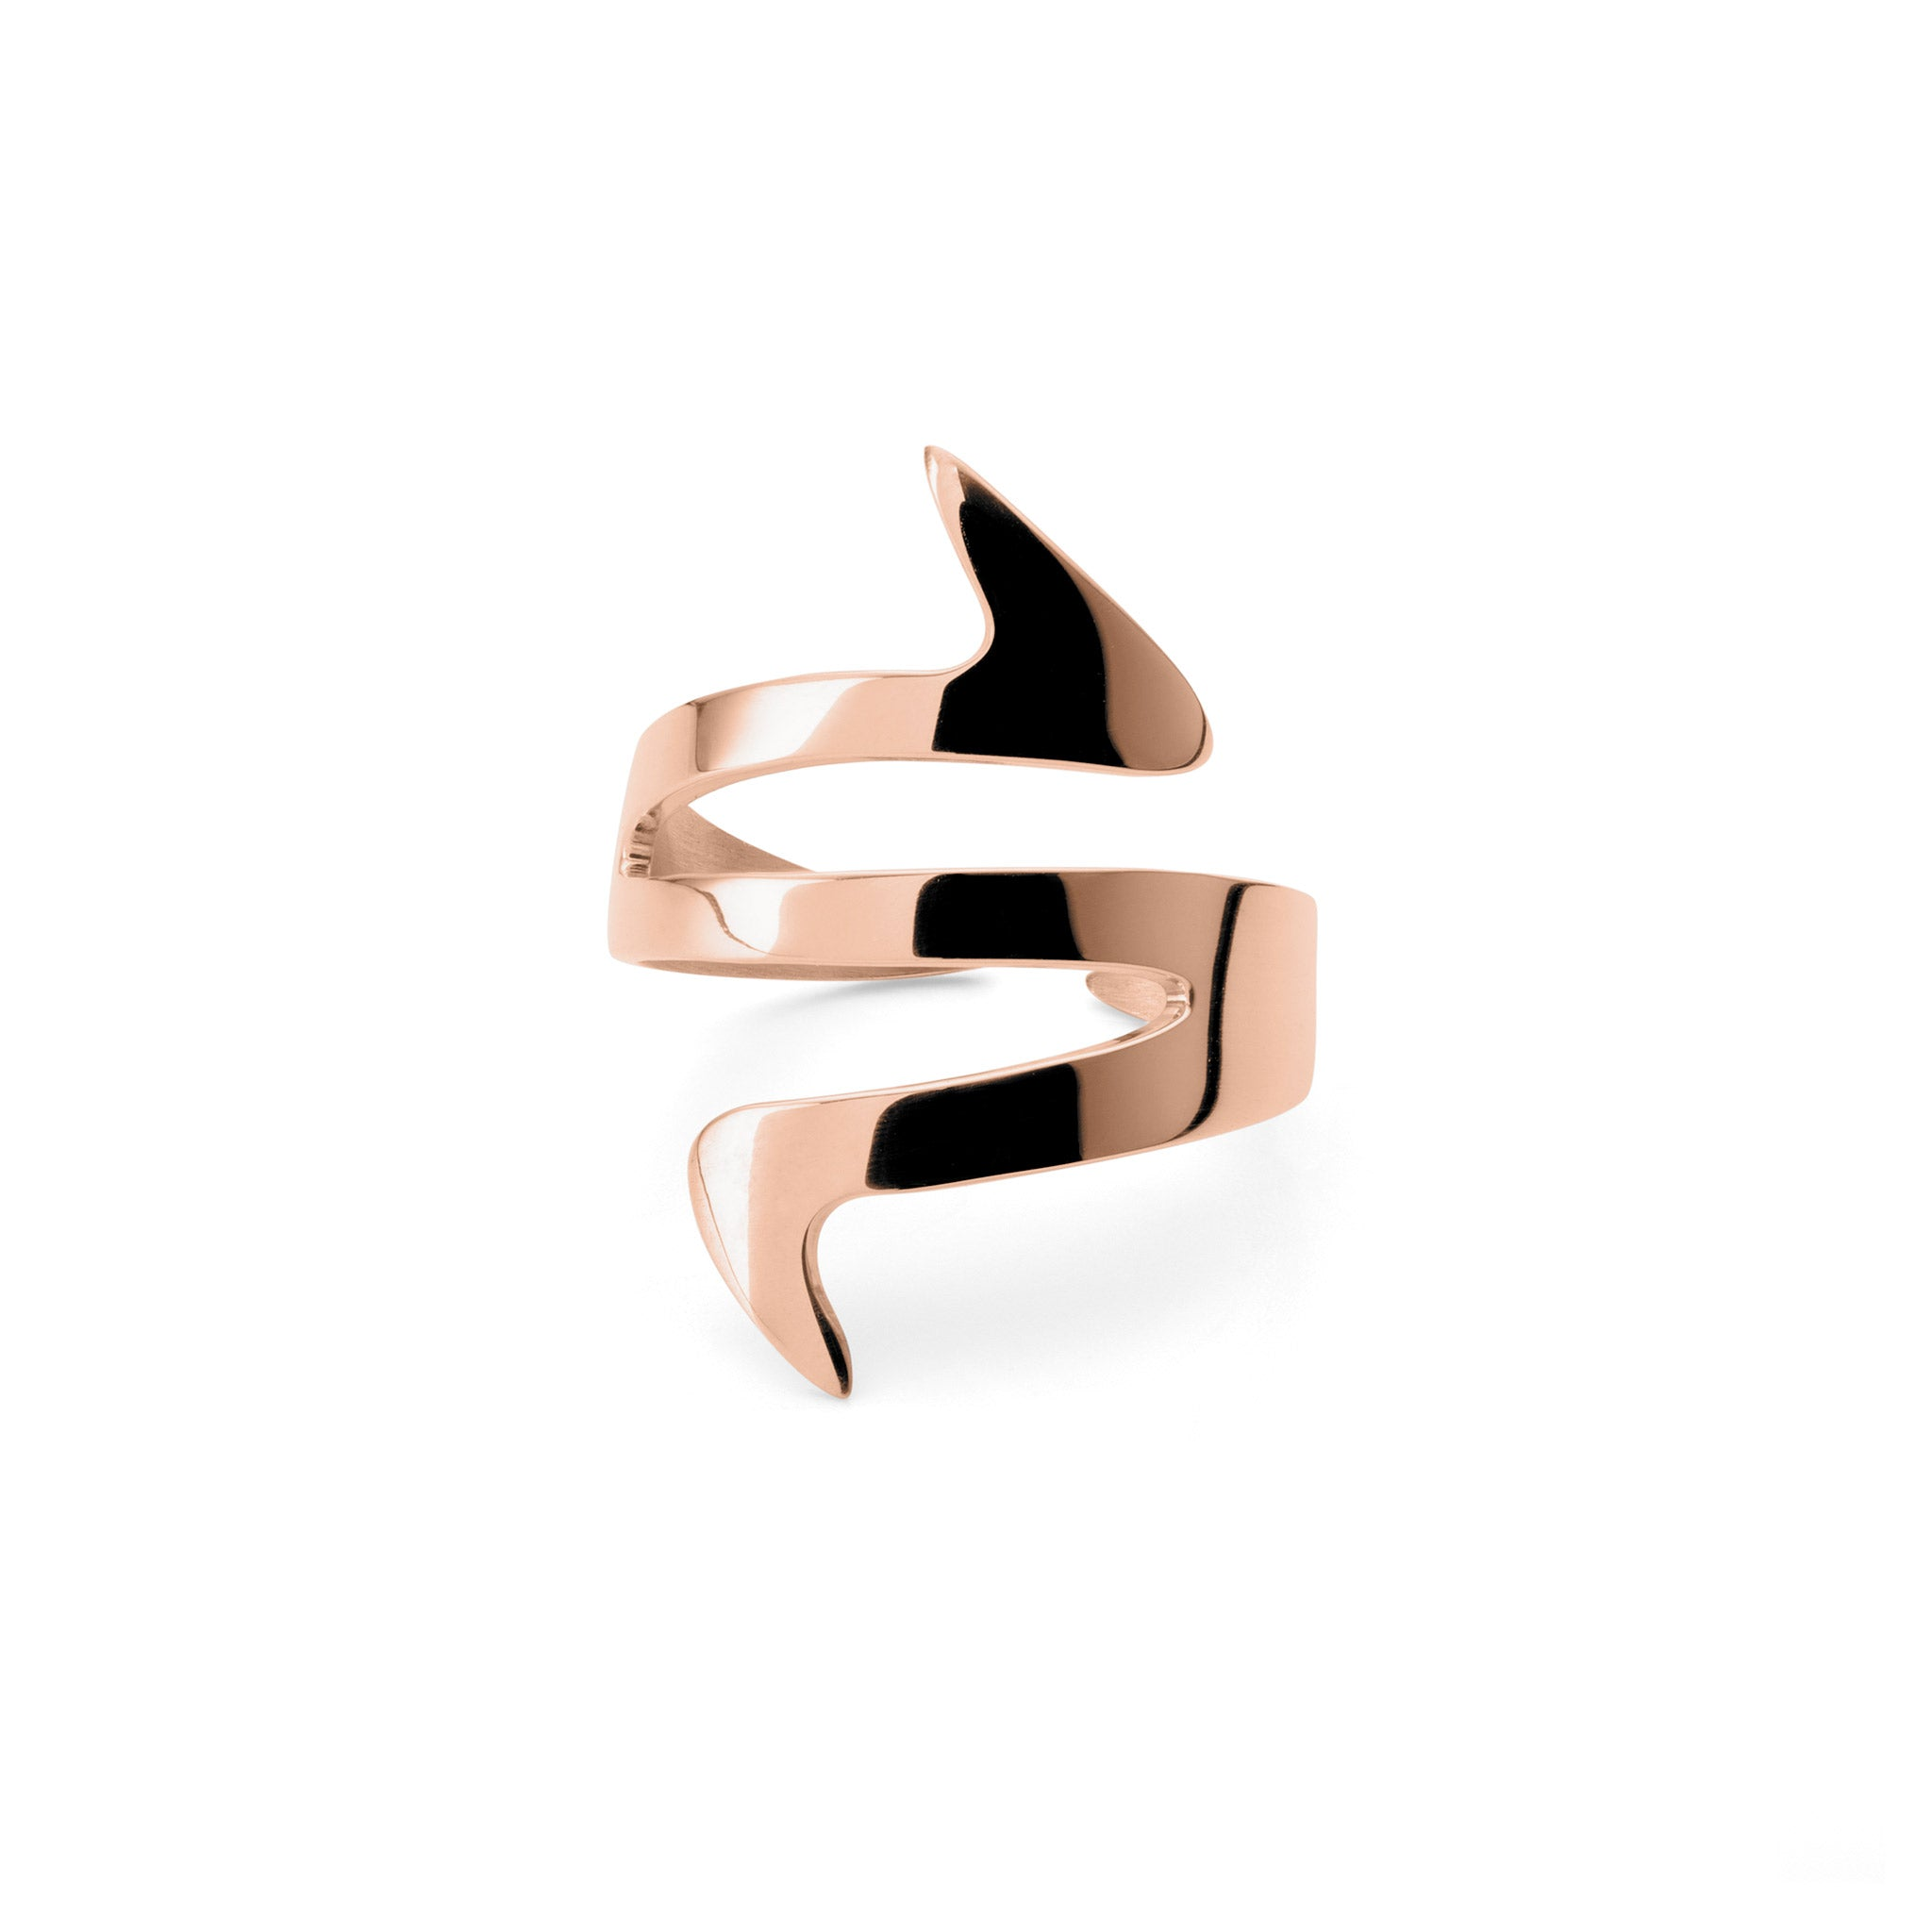 Ziggy Sterling silver ring for women in rose gold